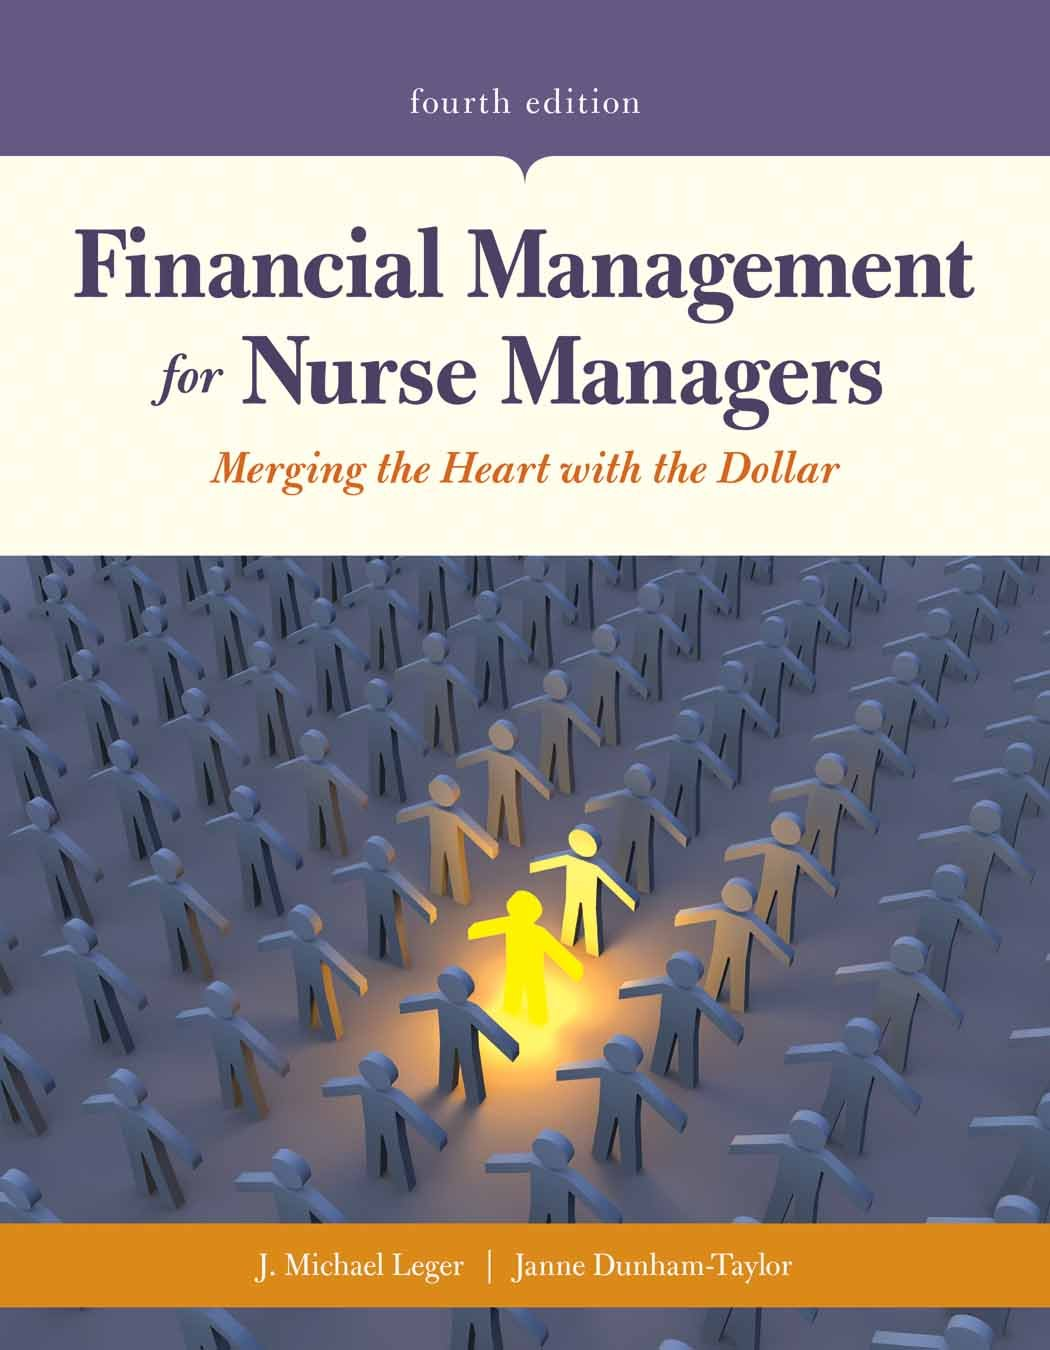 Financial Management for Nurse Managers: Merging the Heart with the Dollar